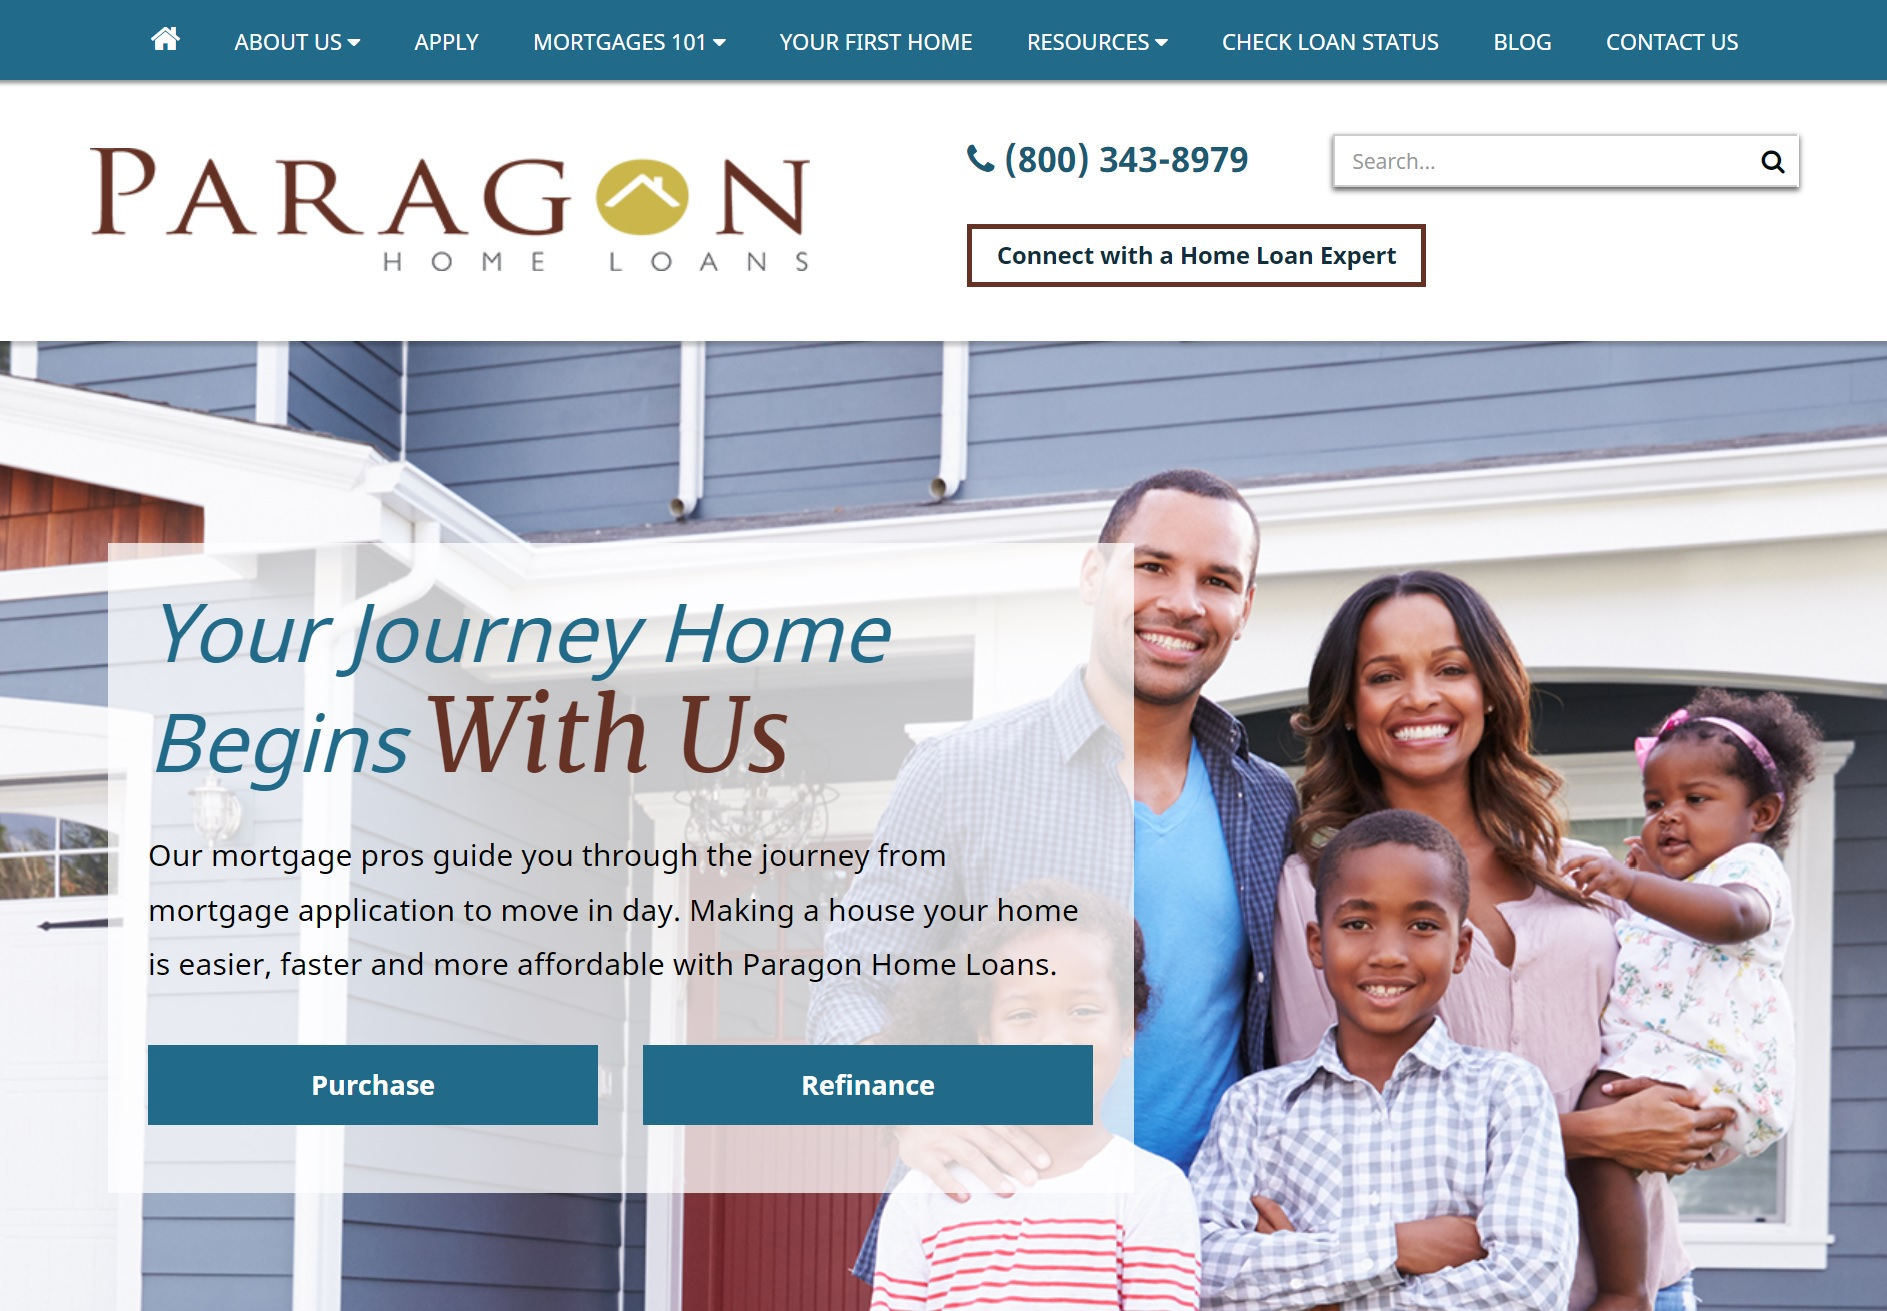 mortgage marketing brand identity for paragon home loans by acs web design and seo